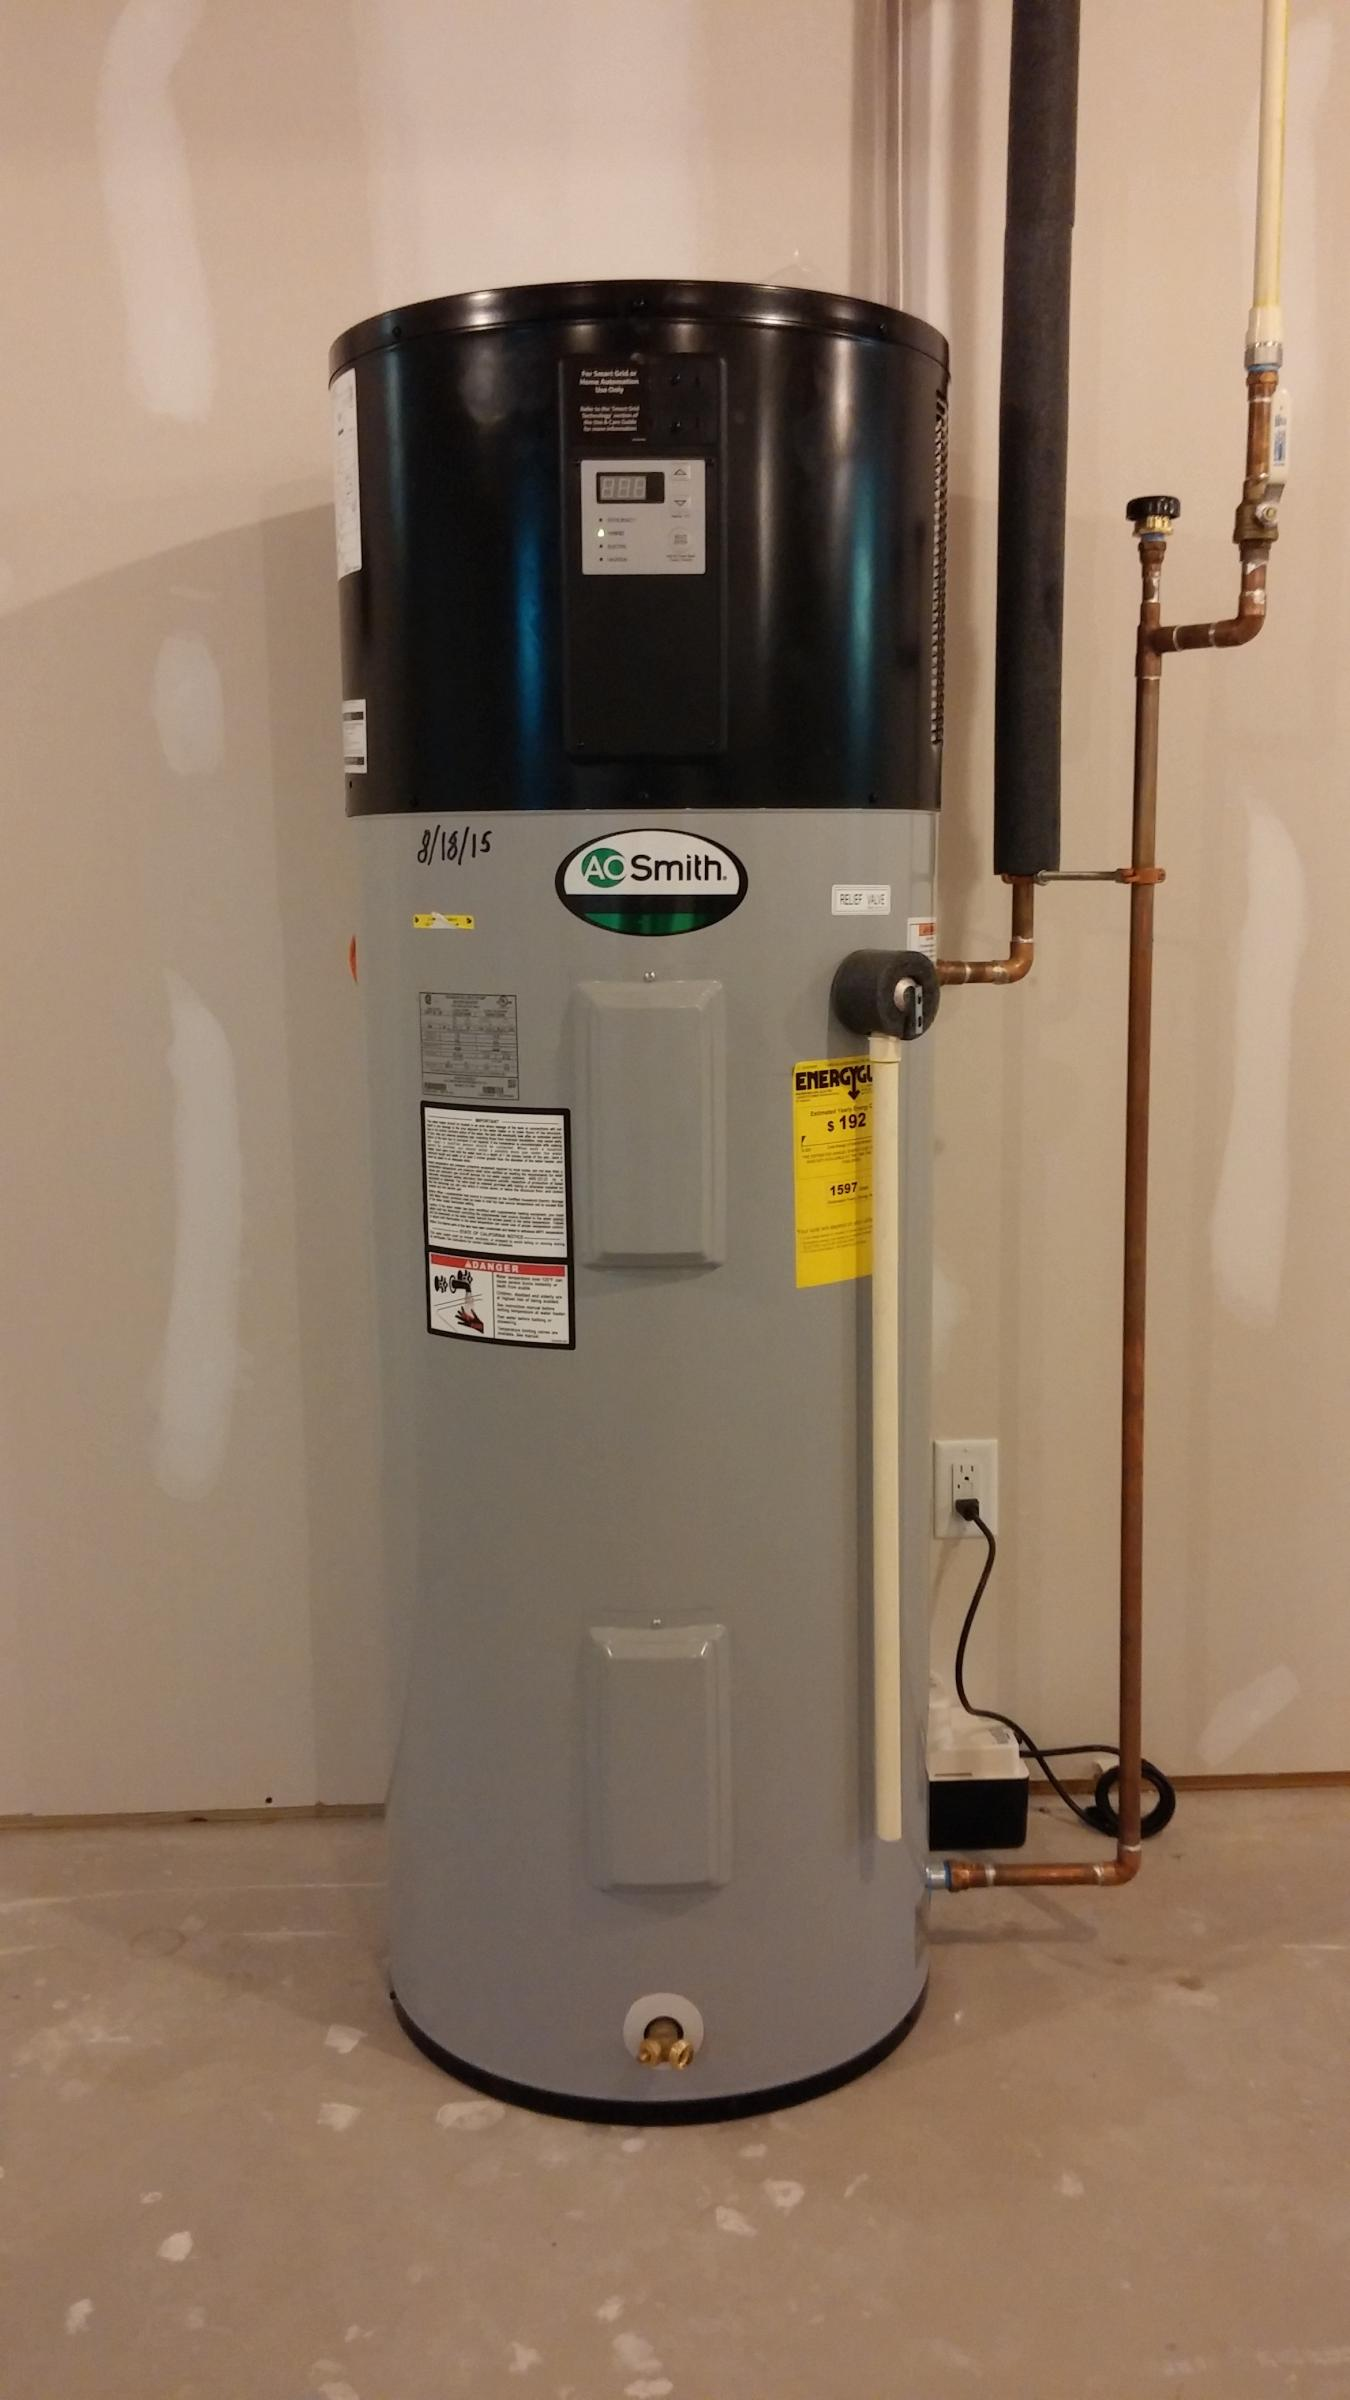 AO Smith air source heat pump water heater